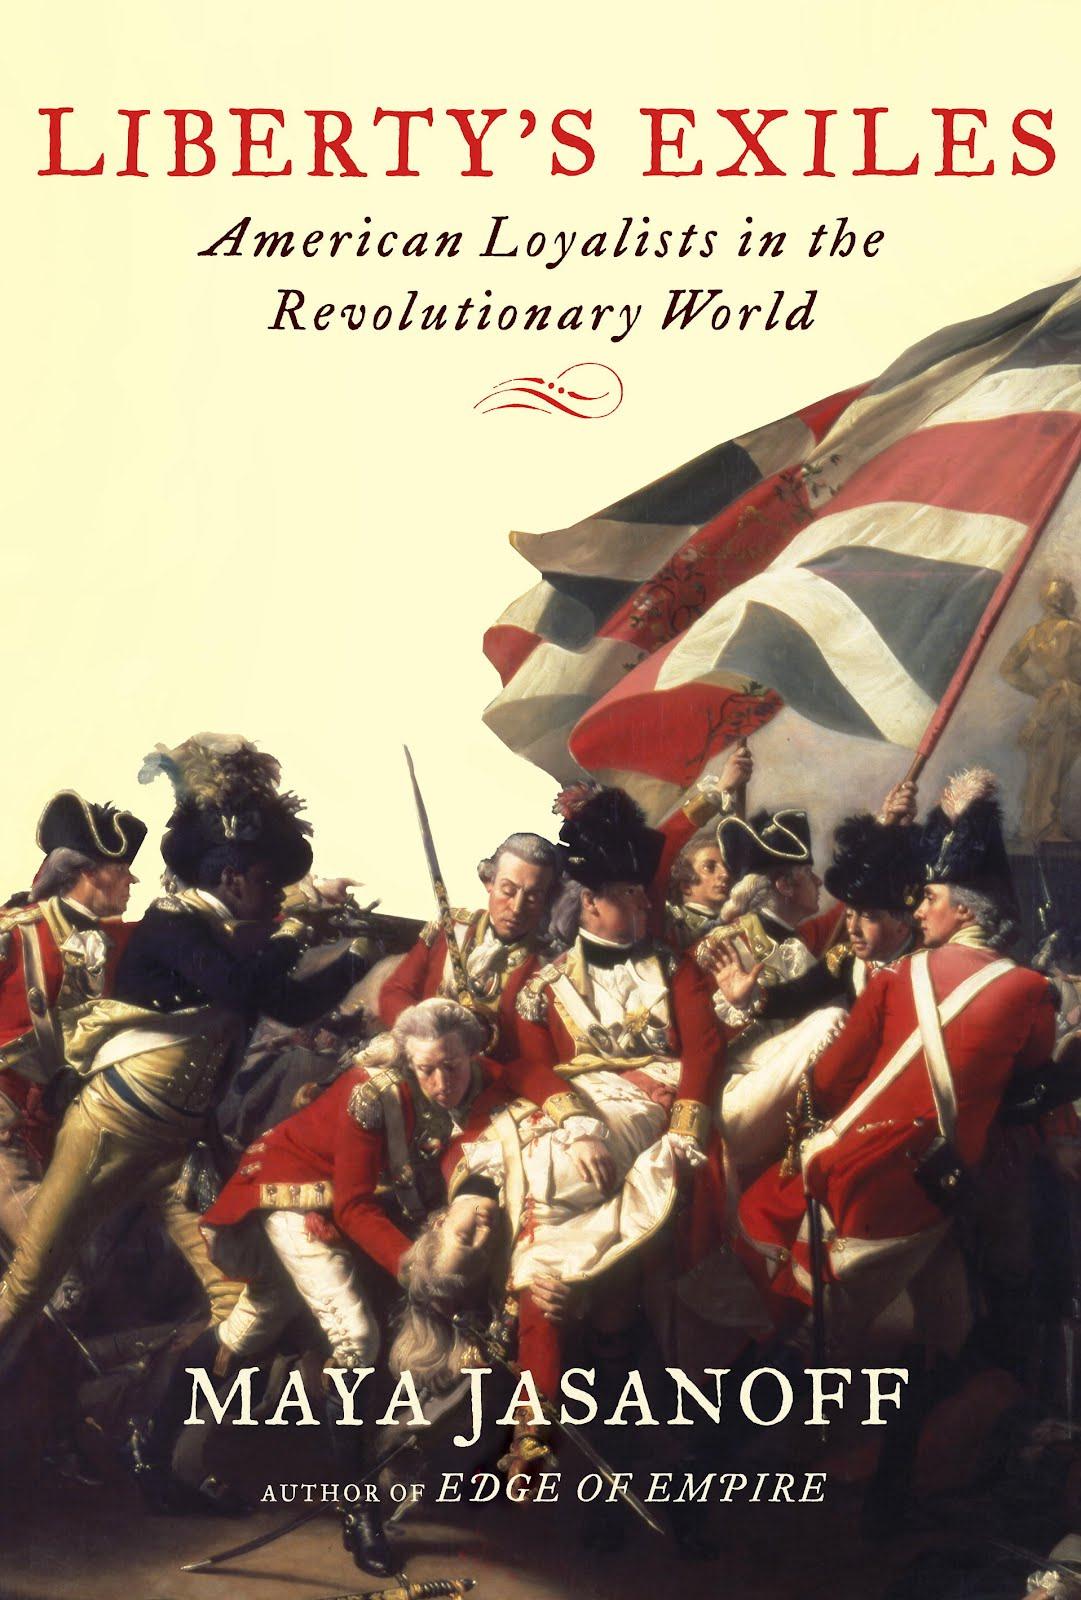 Liberty's Exiles: American Loyalists in the Revolutionary World by Maya Jasanoff